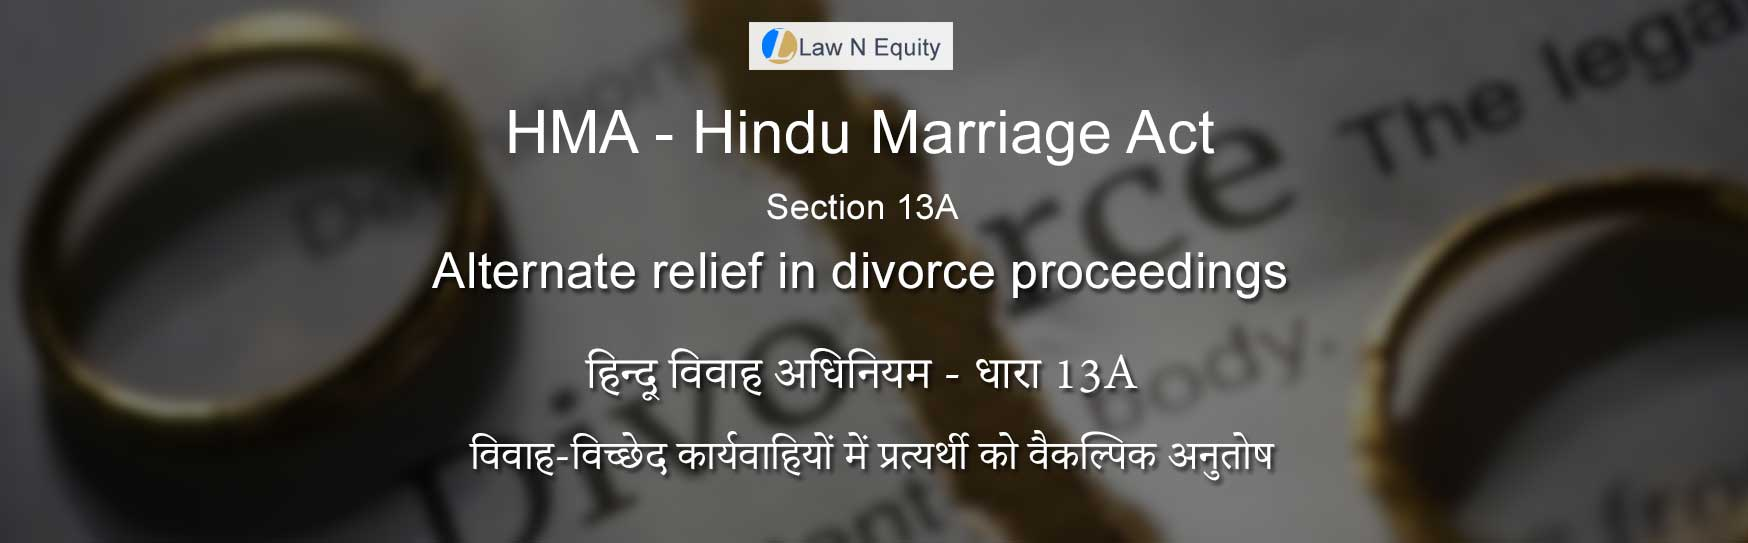 Hindu Marriage Act(HMA) Section 13A